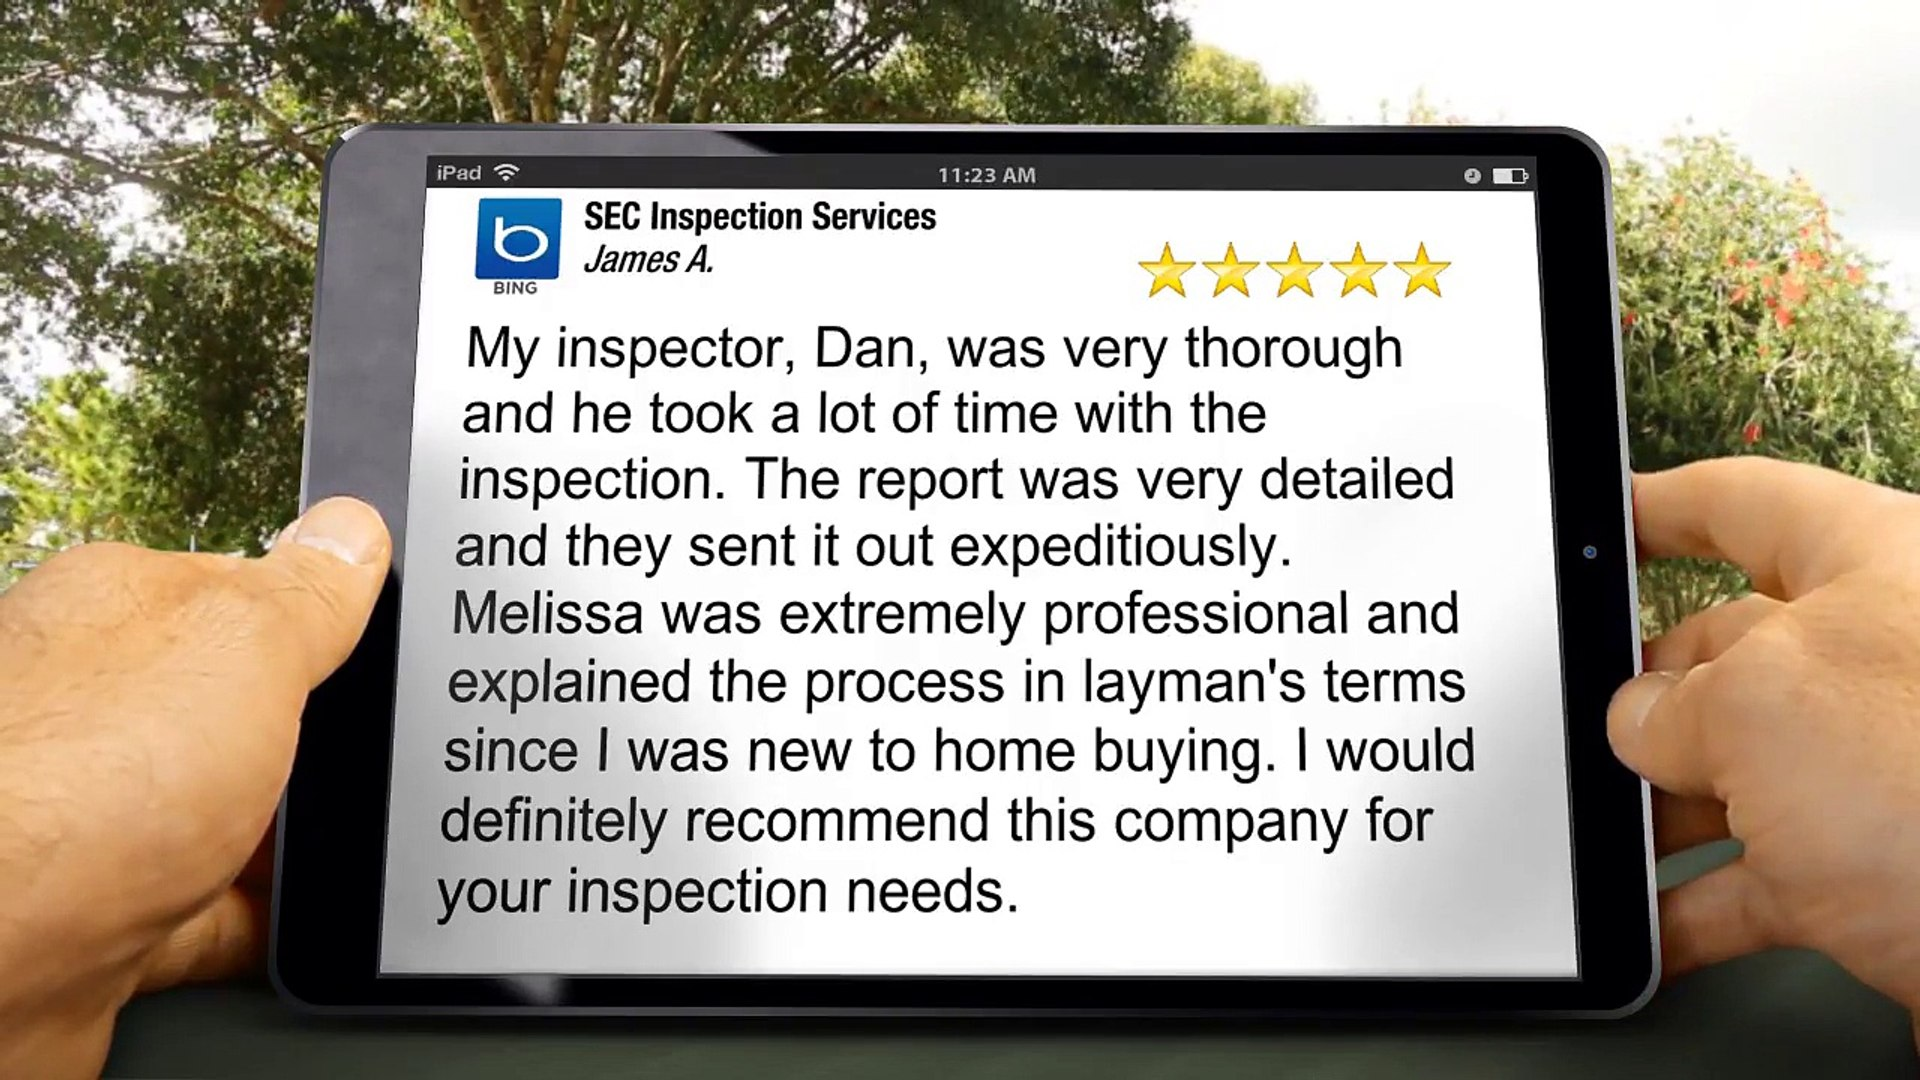 SEC Inspection Services Pinellas Park Terrific 5 Star Review by James A.